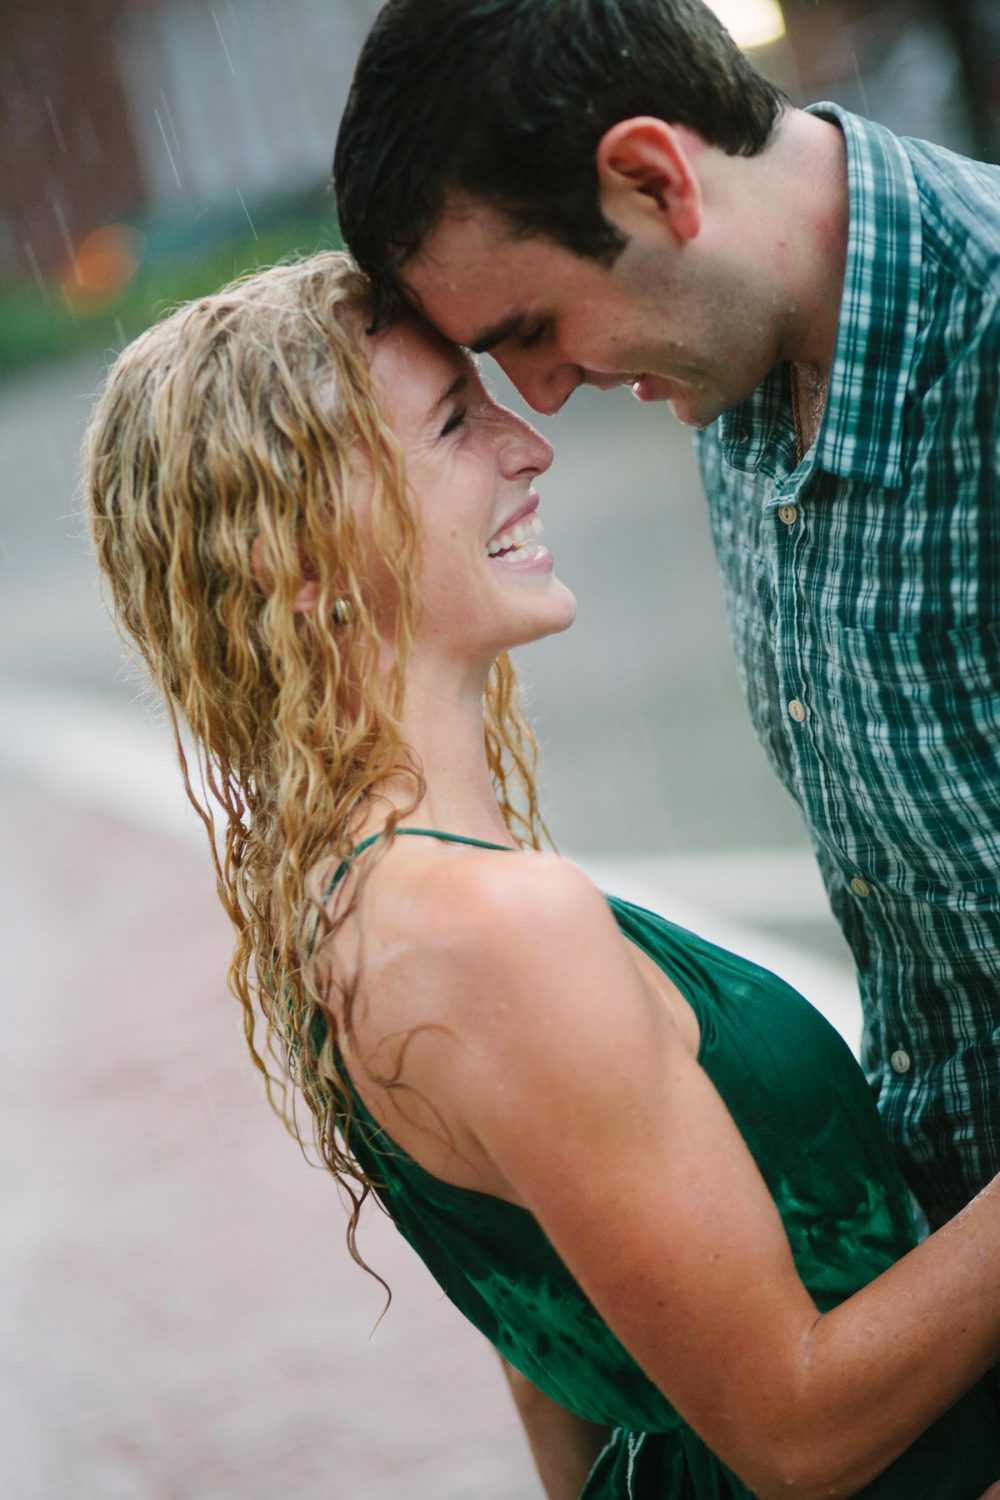 020-summer-manchester-nh-rain-engagement